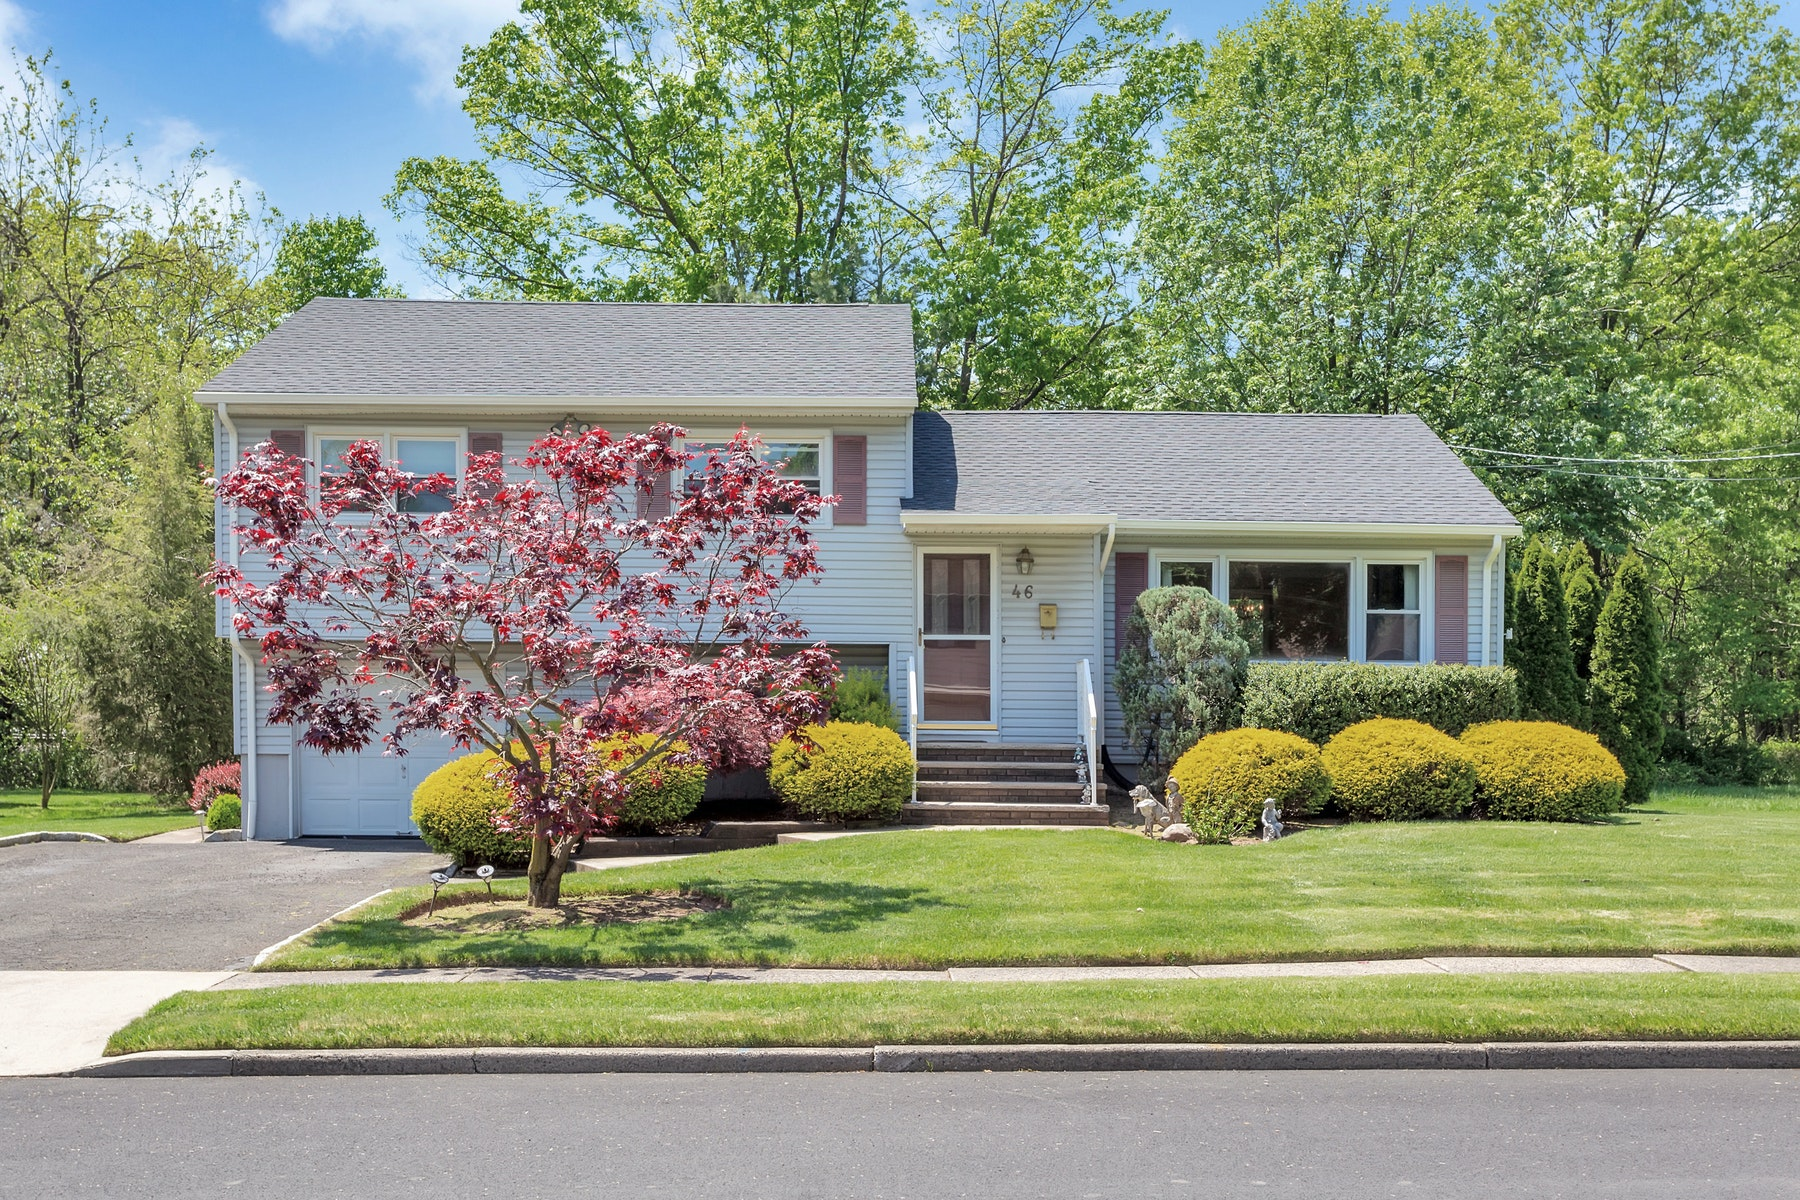 Single Family Homes for Sale at Beautiful Split Level Home 46 Nottingham Road, Fair Lawn, New Jersey 07410 United States